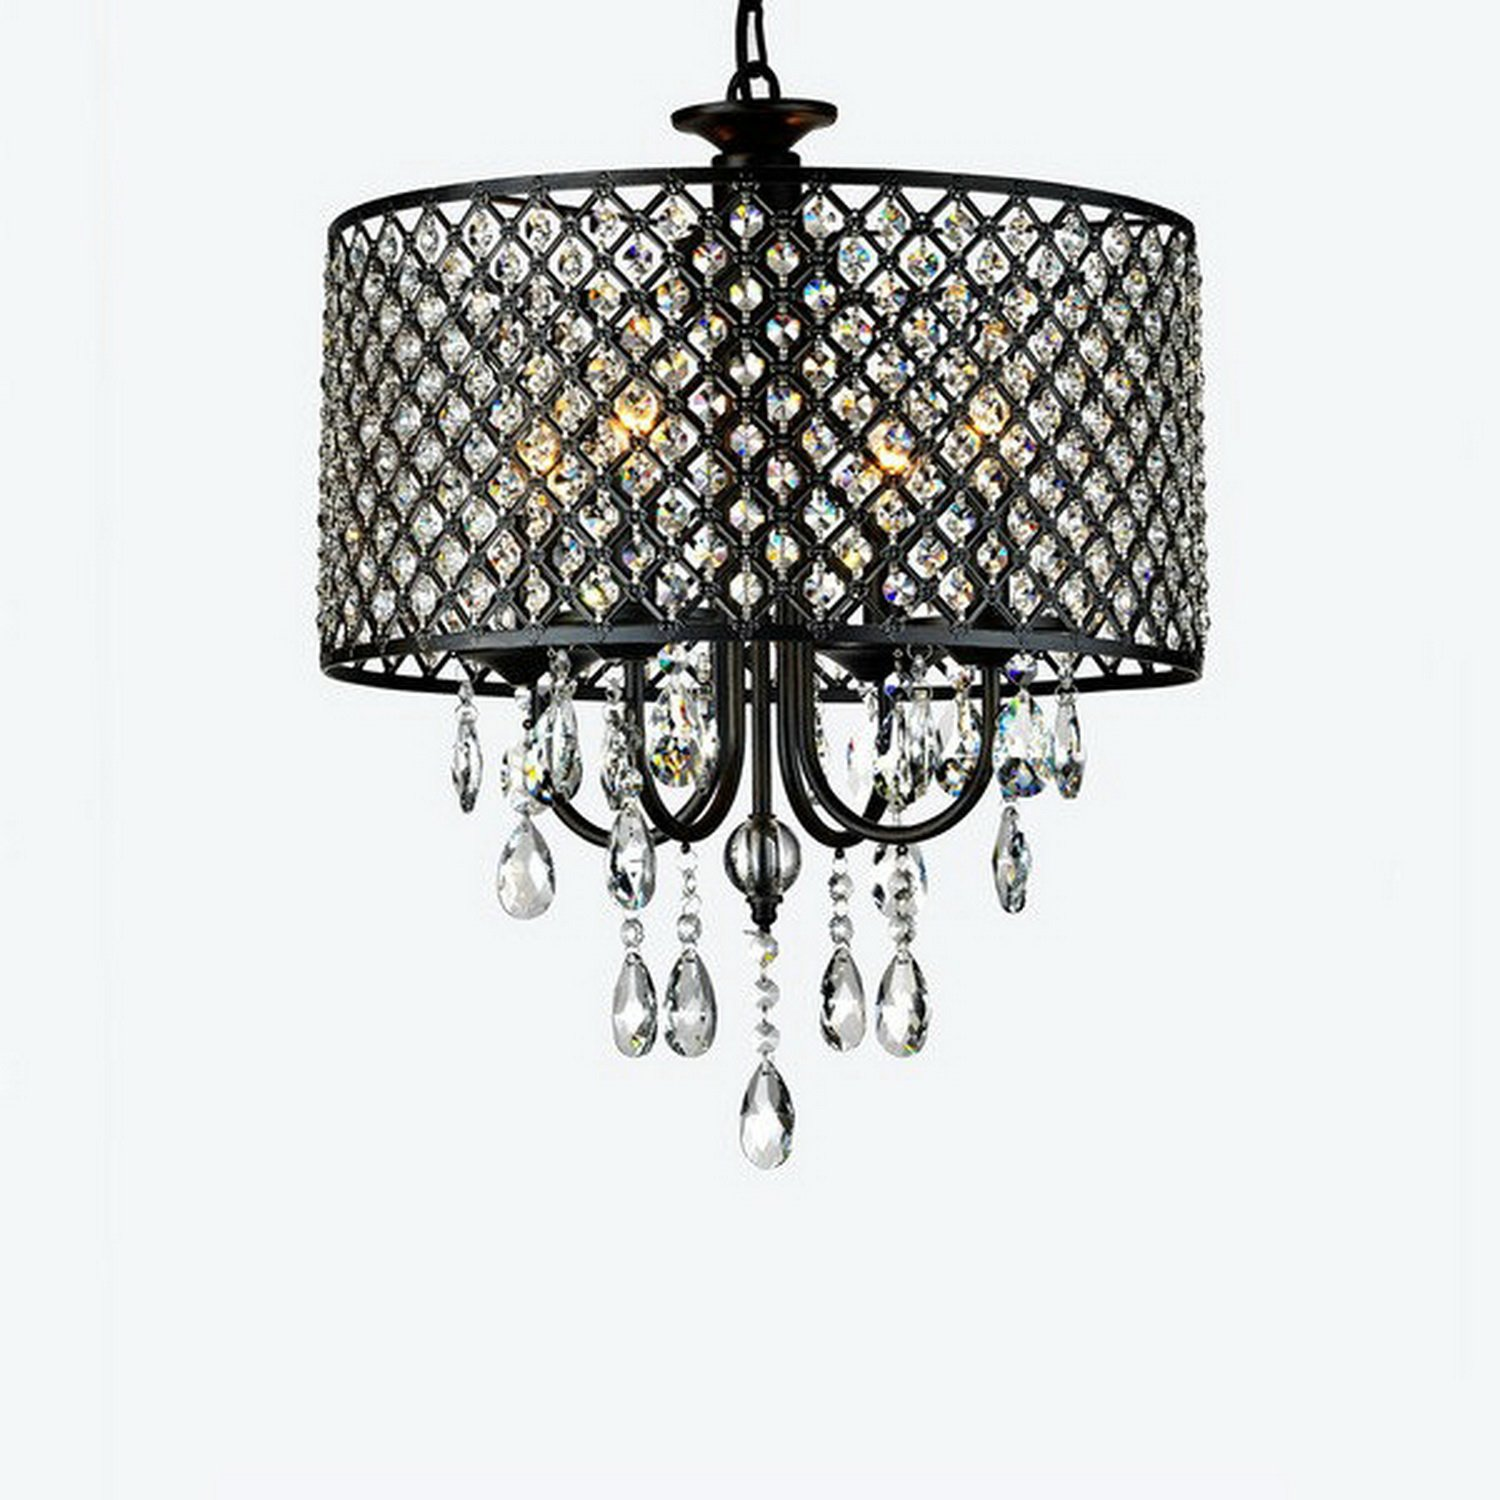 LightInTheBox Antique Bronze 4-light Round Crystal Chandelier with Black Metal-Net Drum Shade Home Ceiling Lamp Fixture Flush Mount